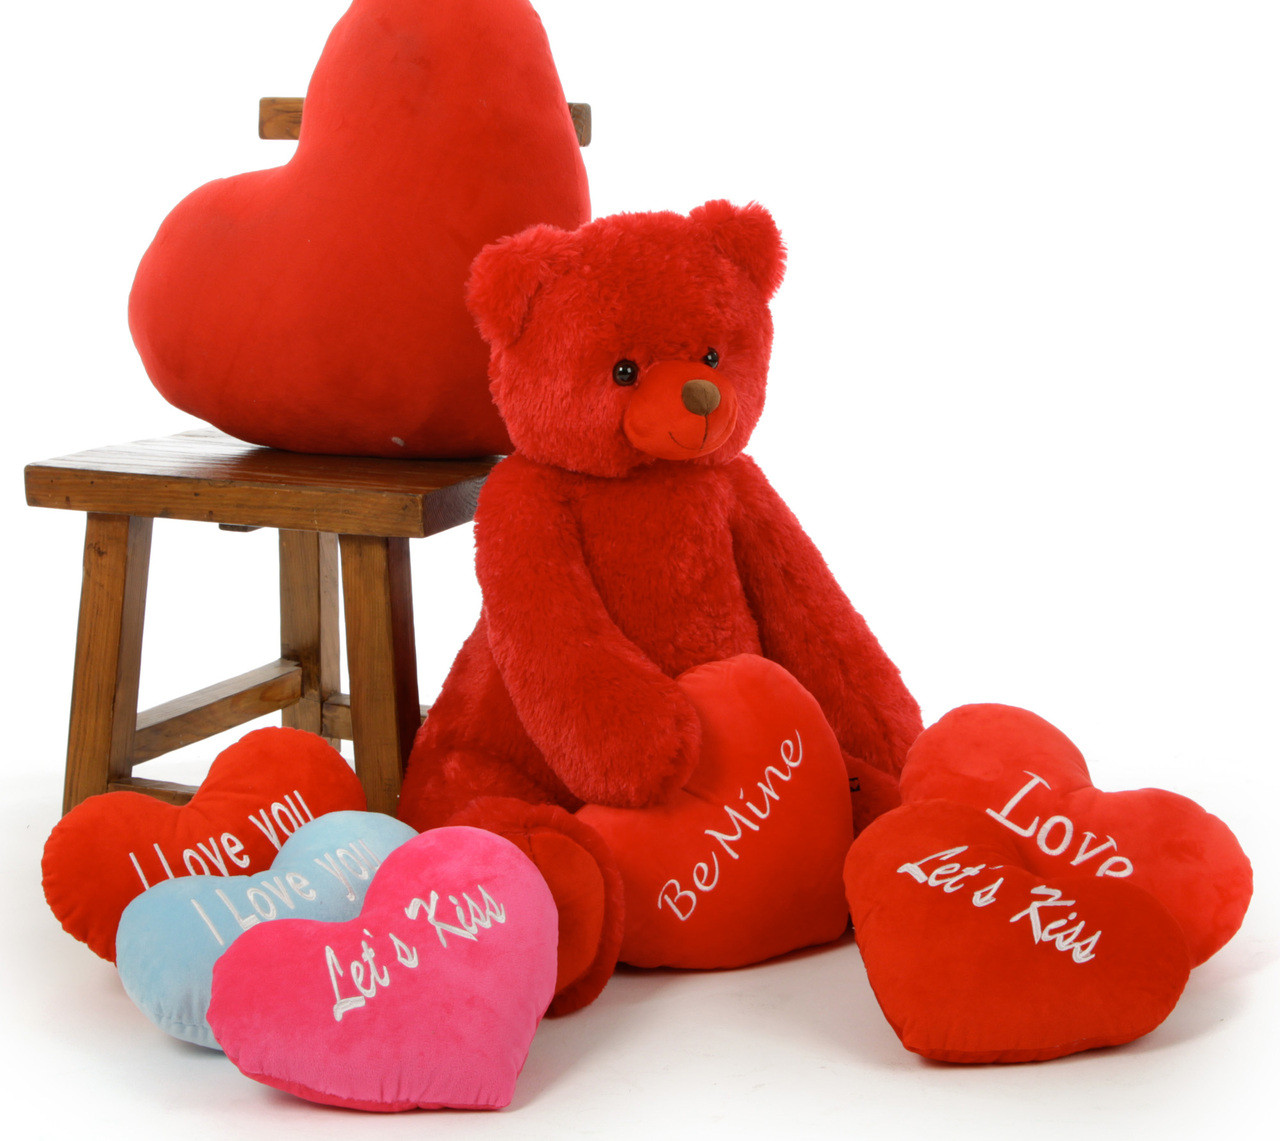 Huge Red Valentine's Day Teddy Bears, 32in, With Plush